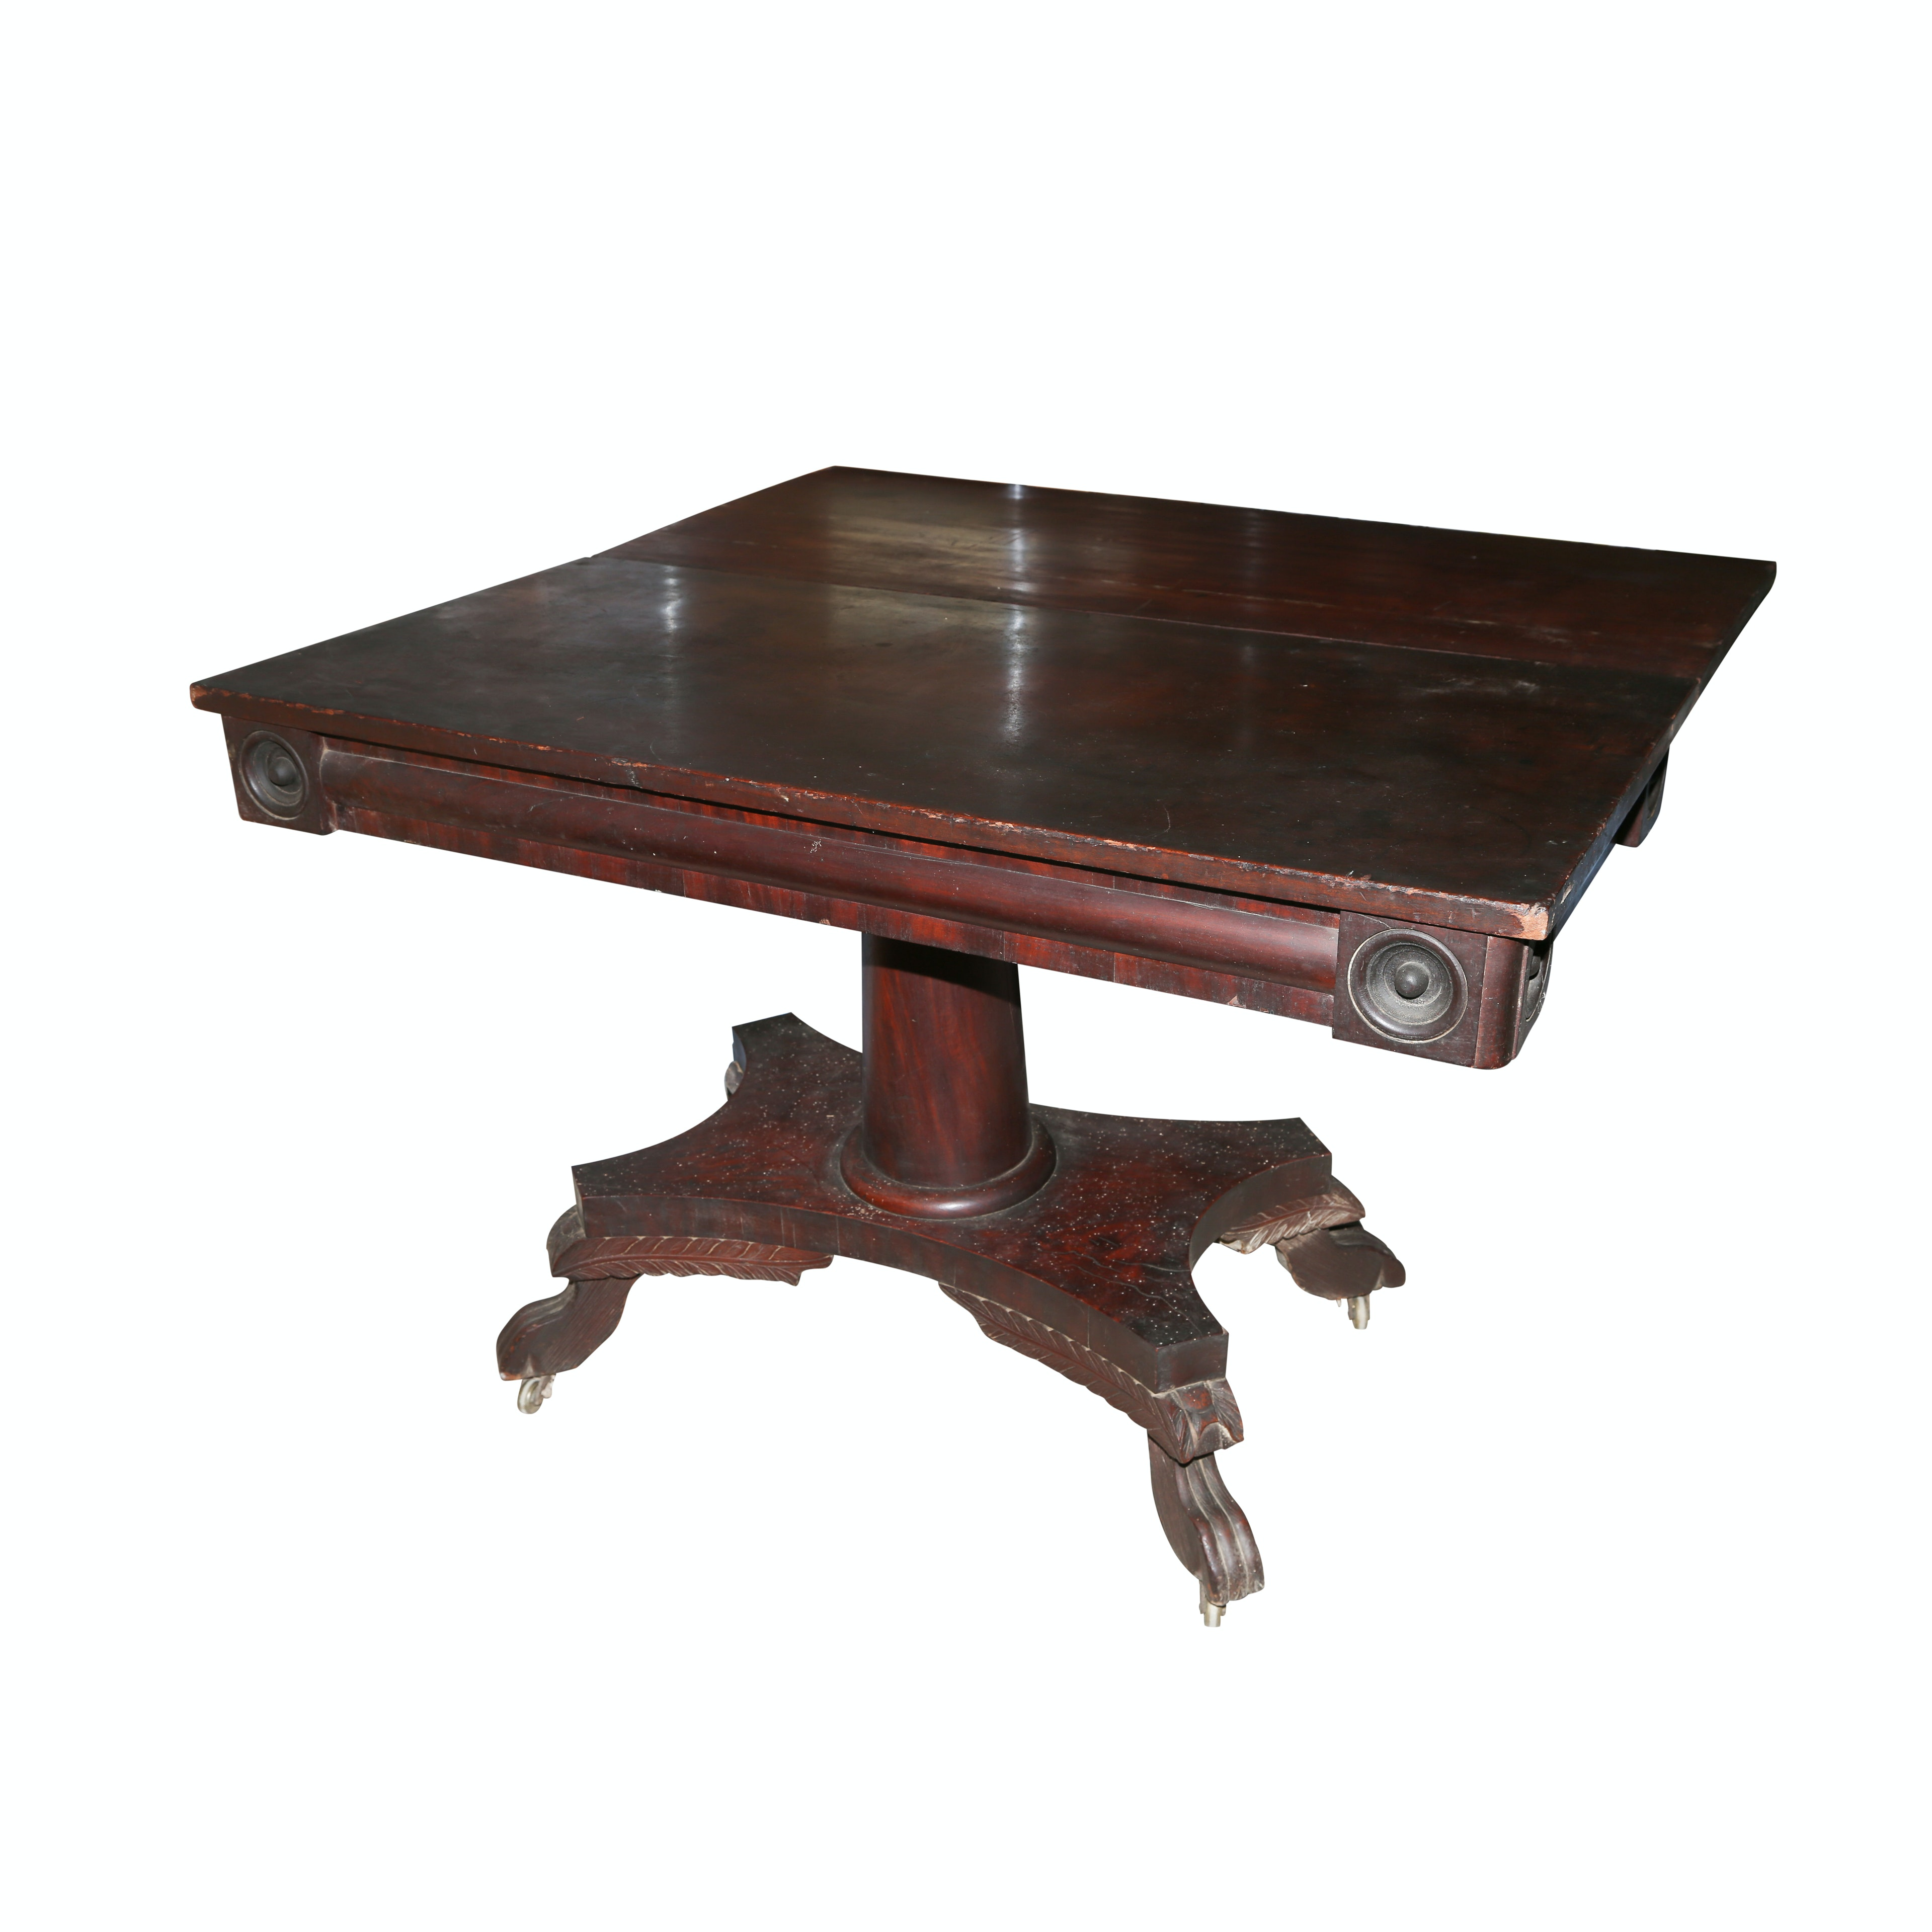 Antique American Classical Mahogany Library Table